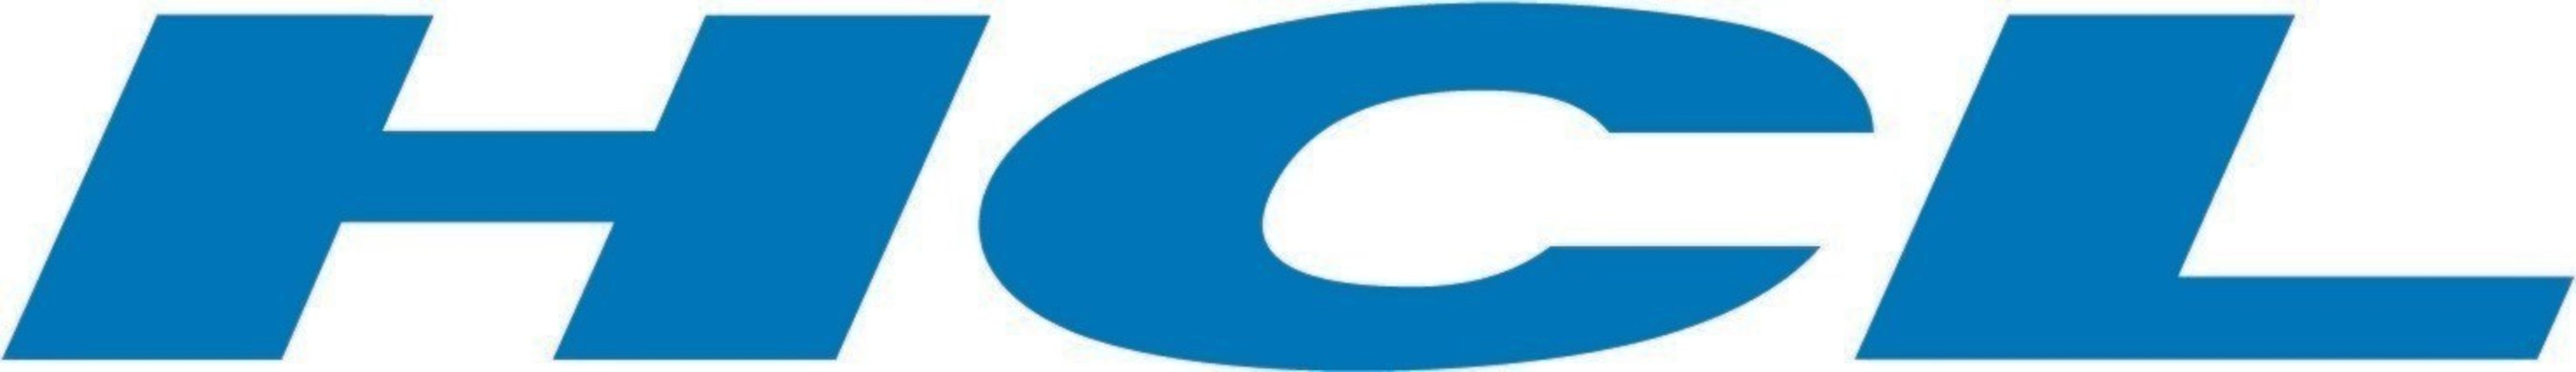 HCL wins two 2015 CA Technologies Partner Awards